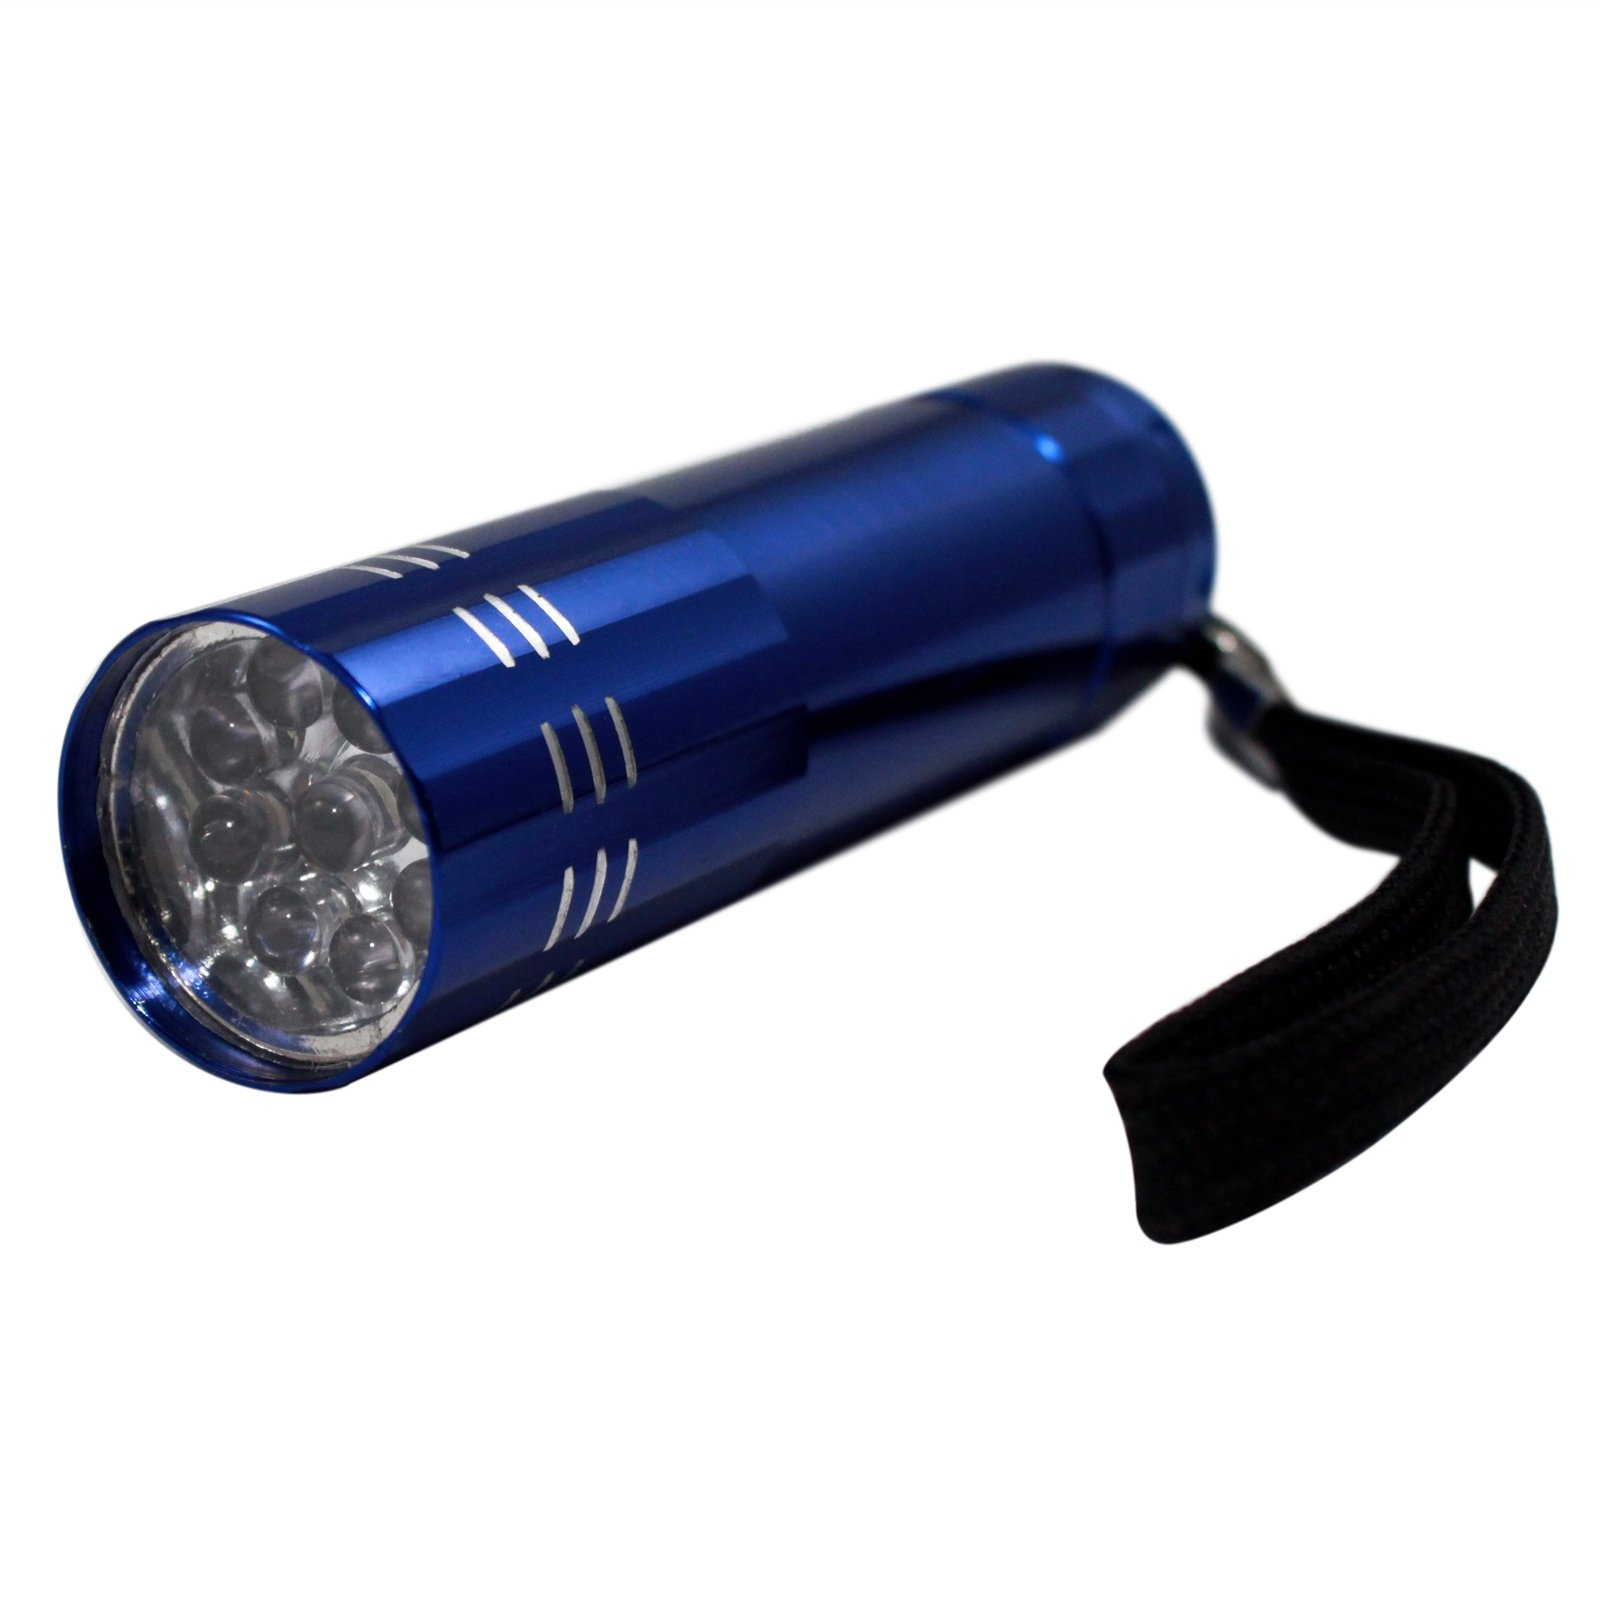 9 LED Super Bright Portable Blue Mini Flashlight with Lanyard - 4 Pack